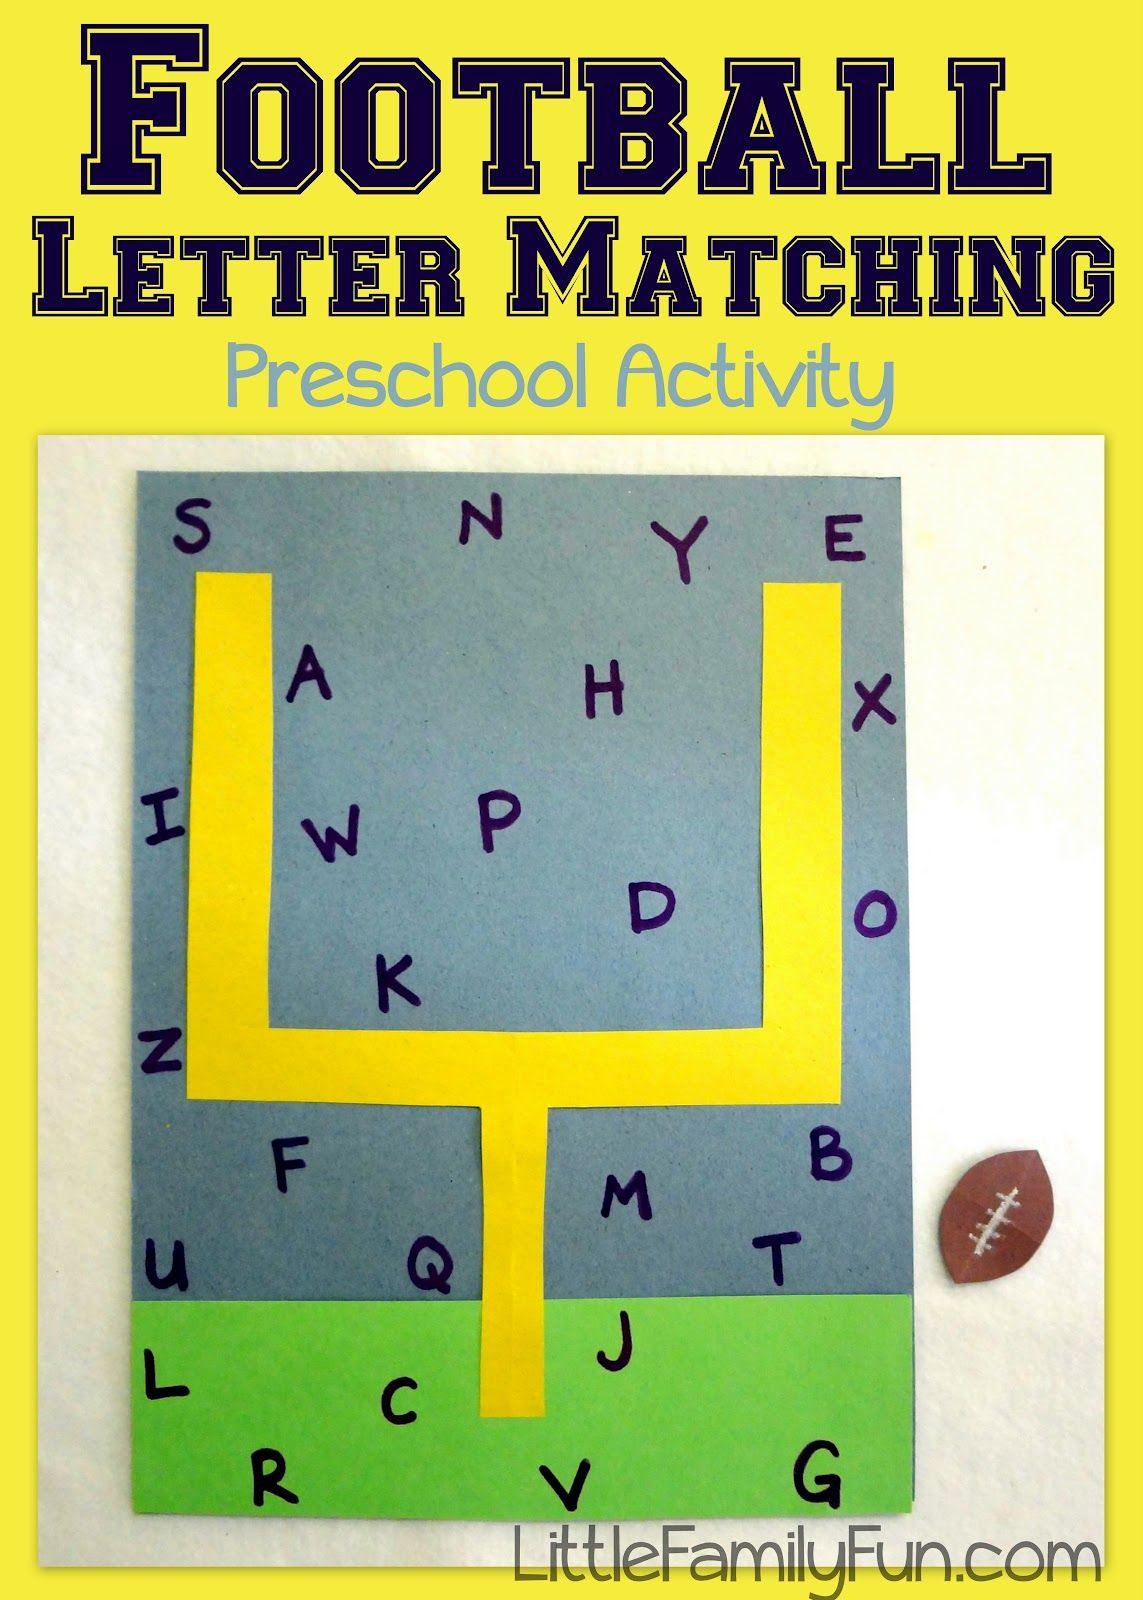 Letter Matching Or Sound Matching List Letters On The